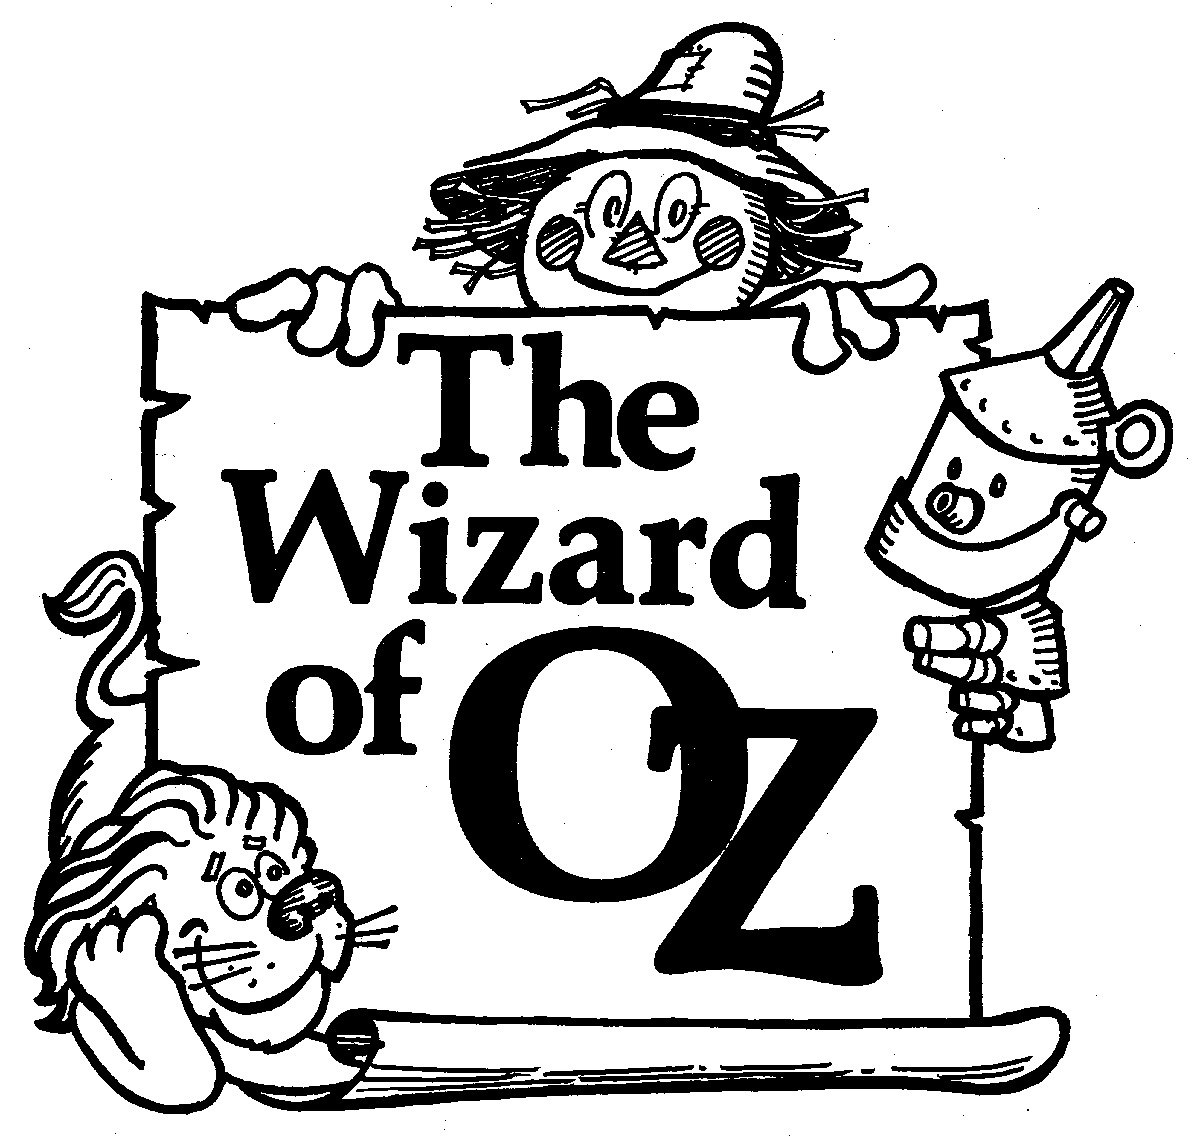 Tickets for Wizard of Oz